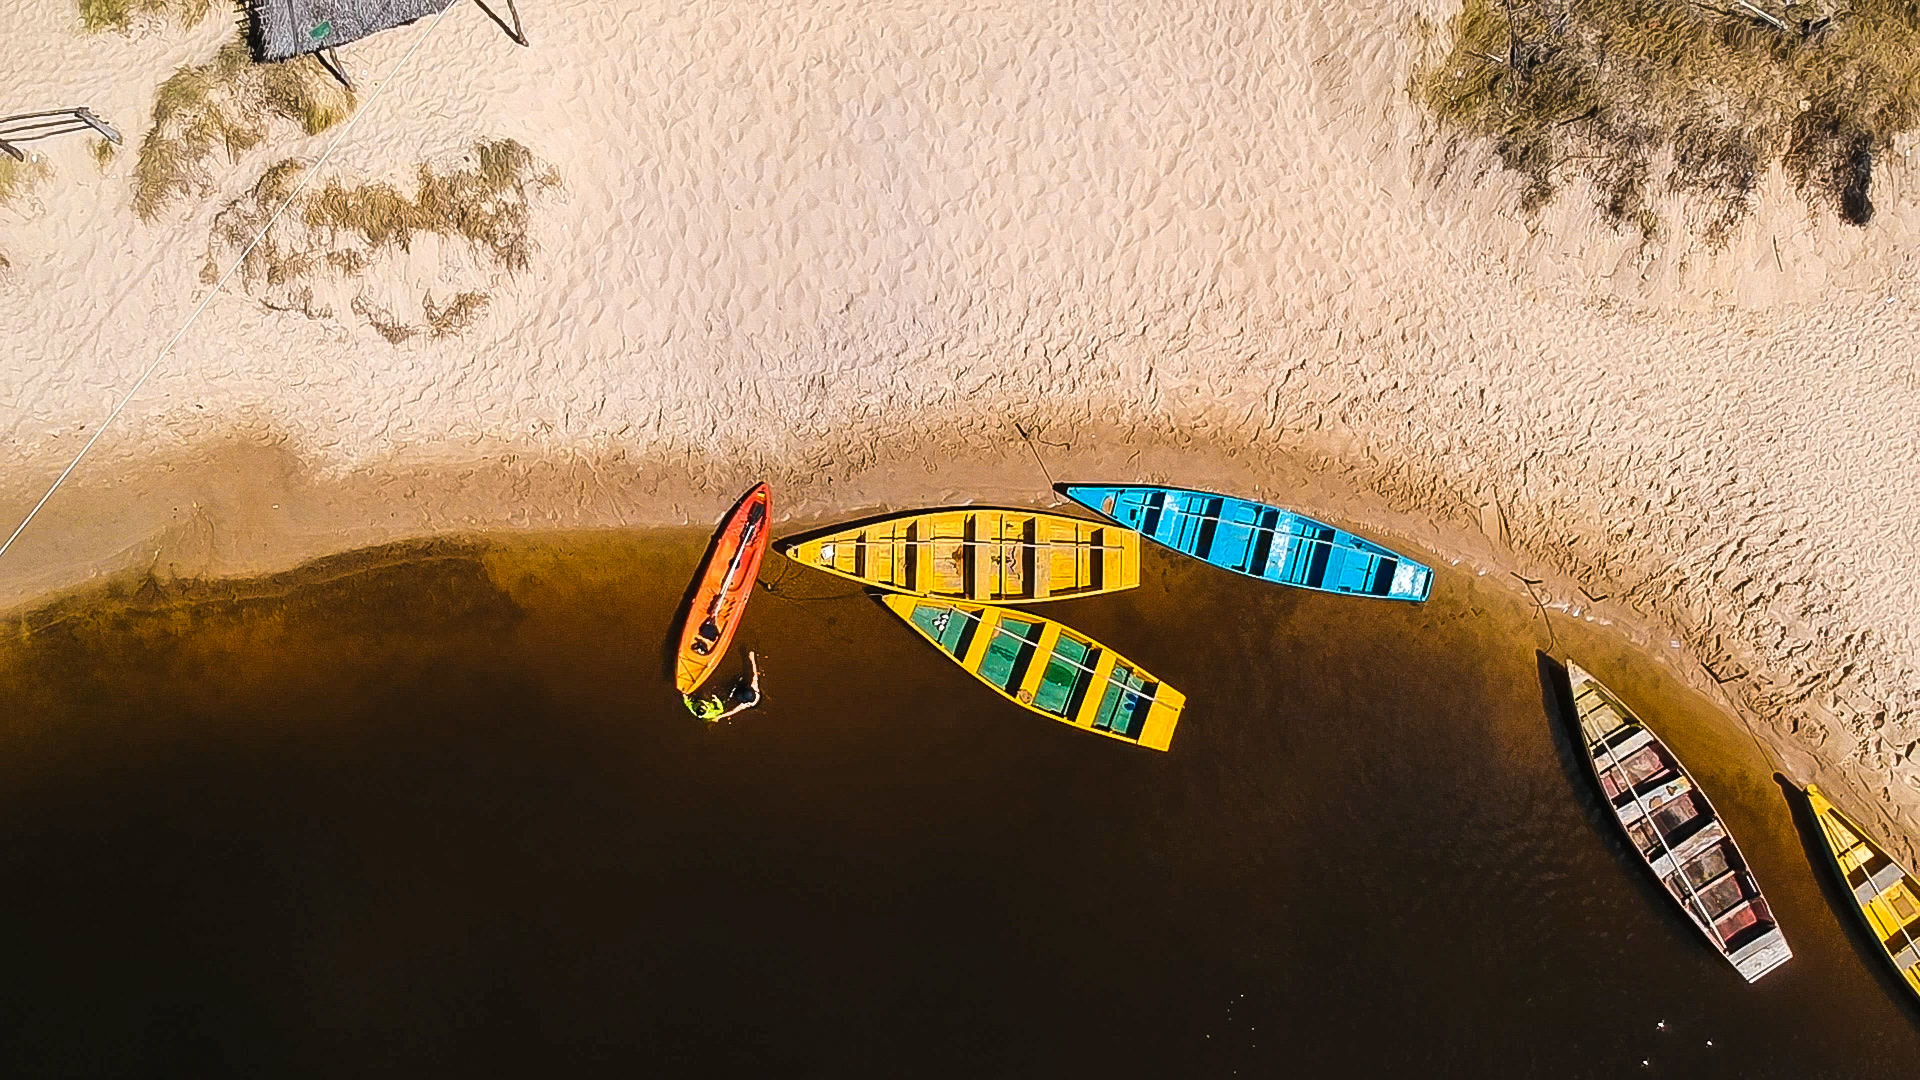 Black Text Wallpaper Top View Of Assorted Colored Row Boats 183 Free Stock Photo